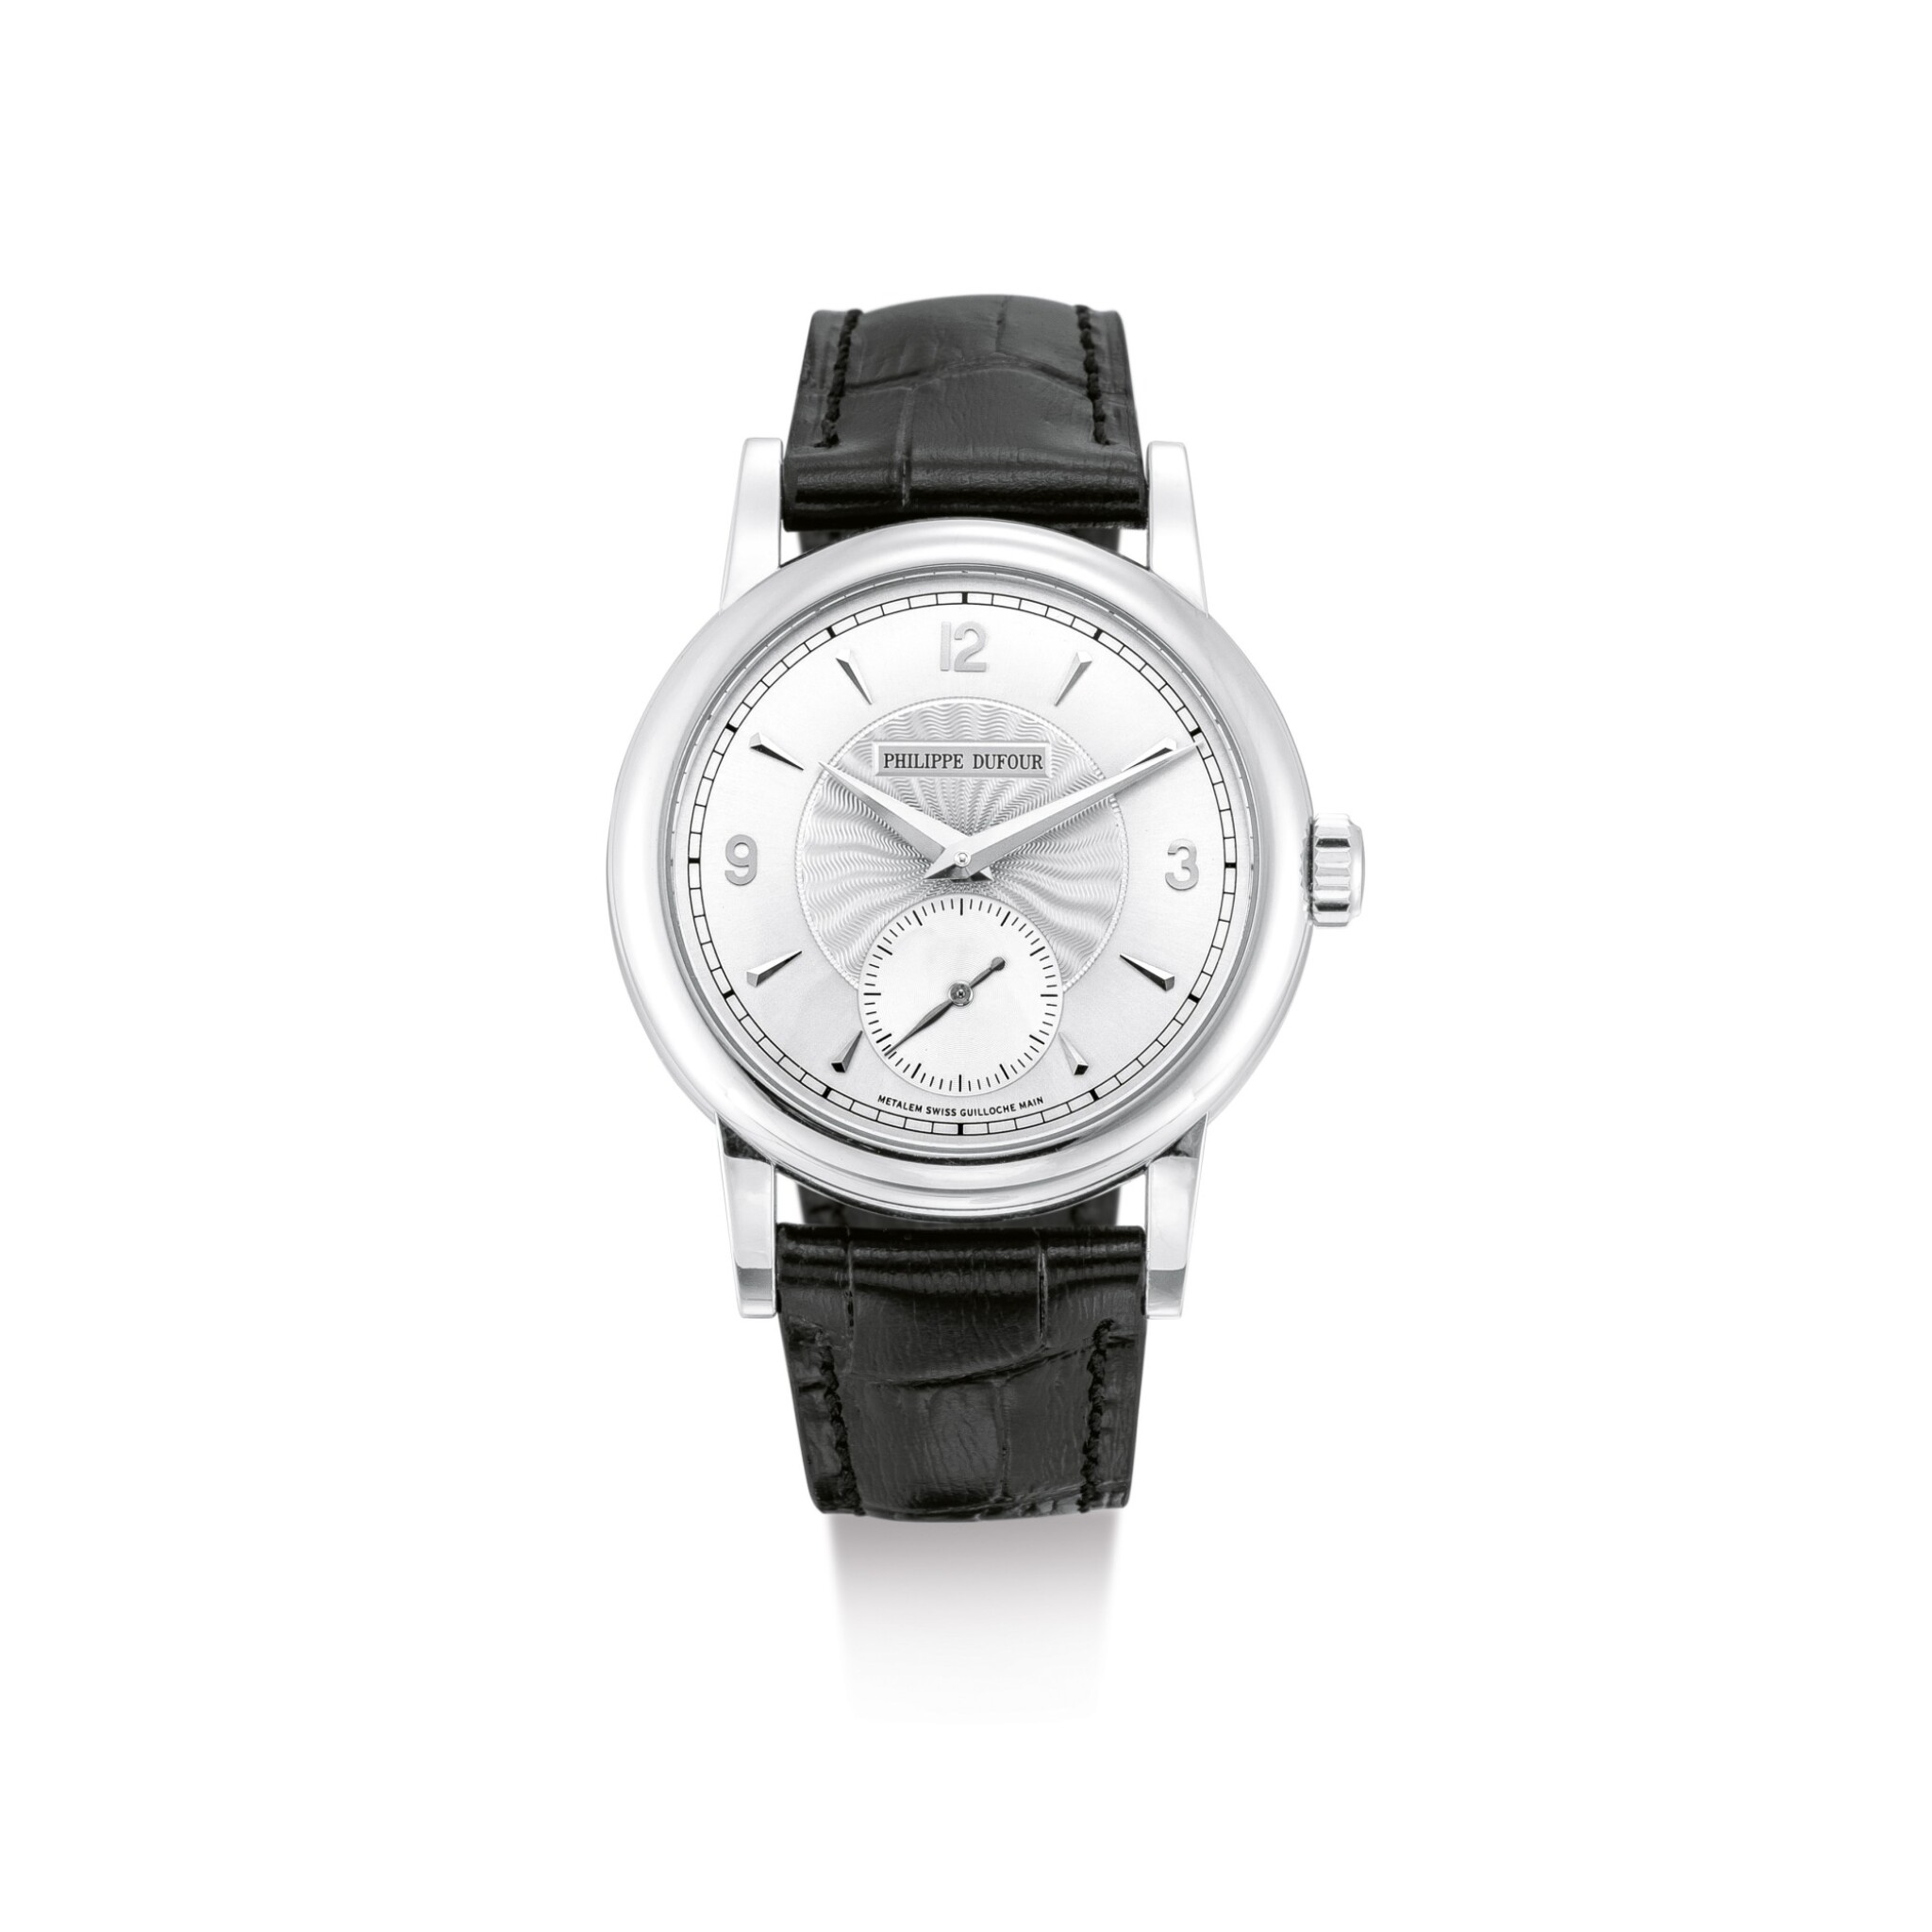 """View full screen - View 1 of Lot 2151. PHILIPPE DUFOUR 